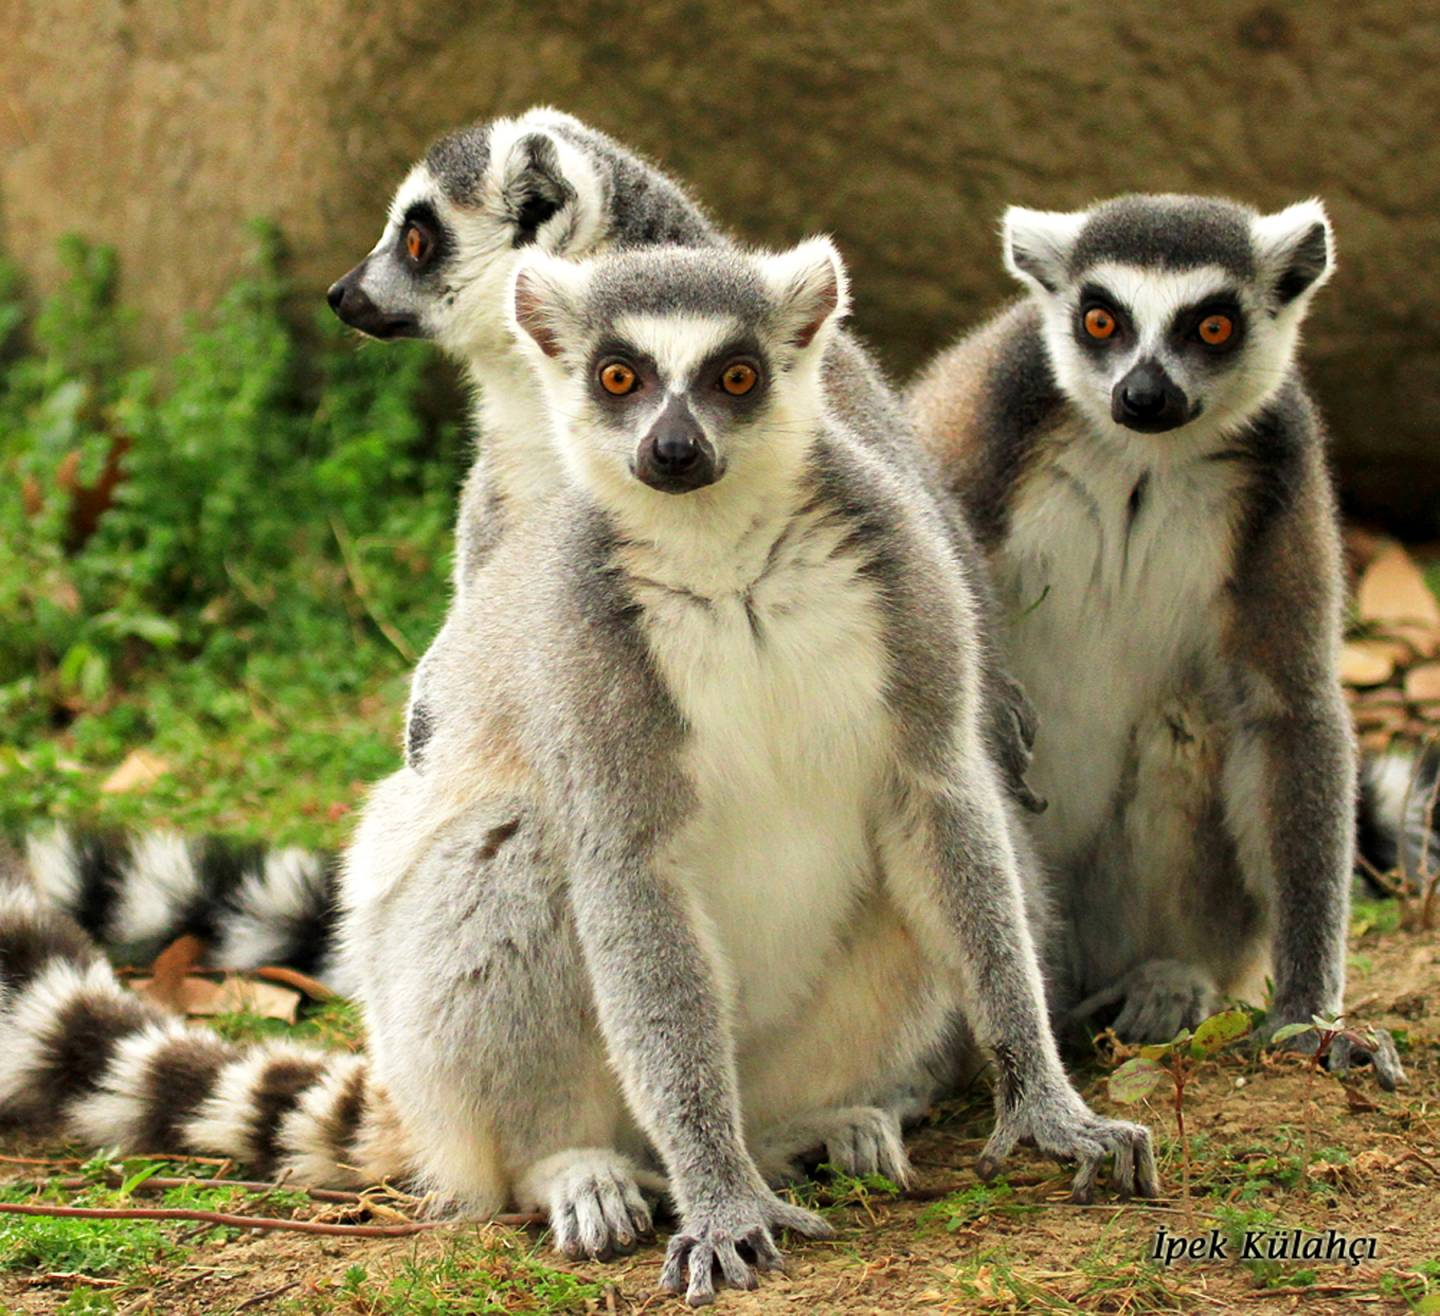 Three lemurs sitting together